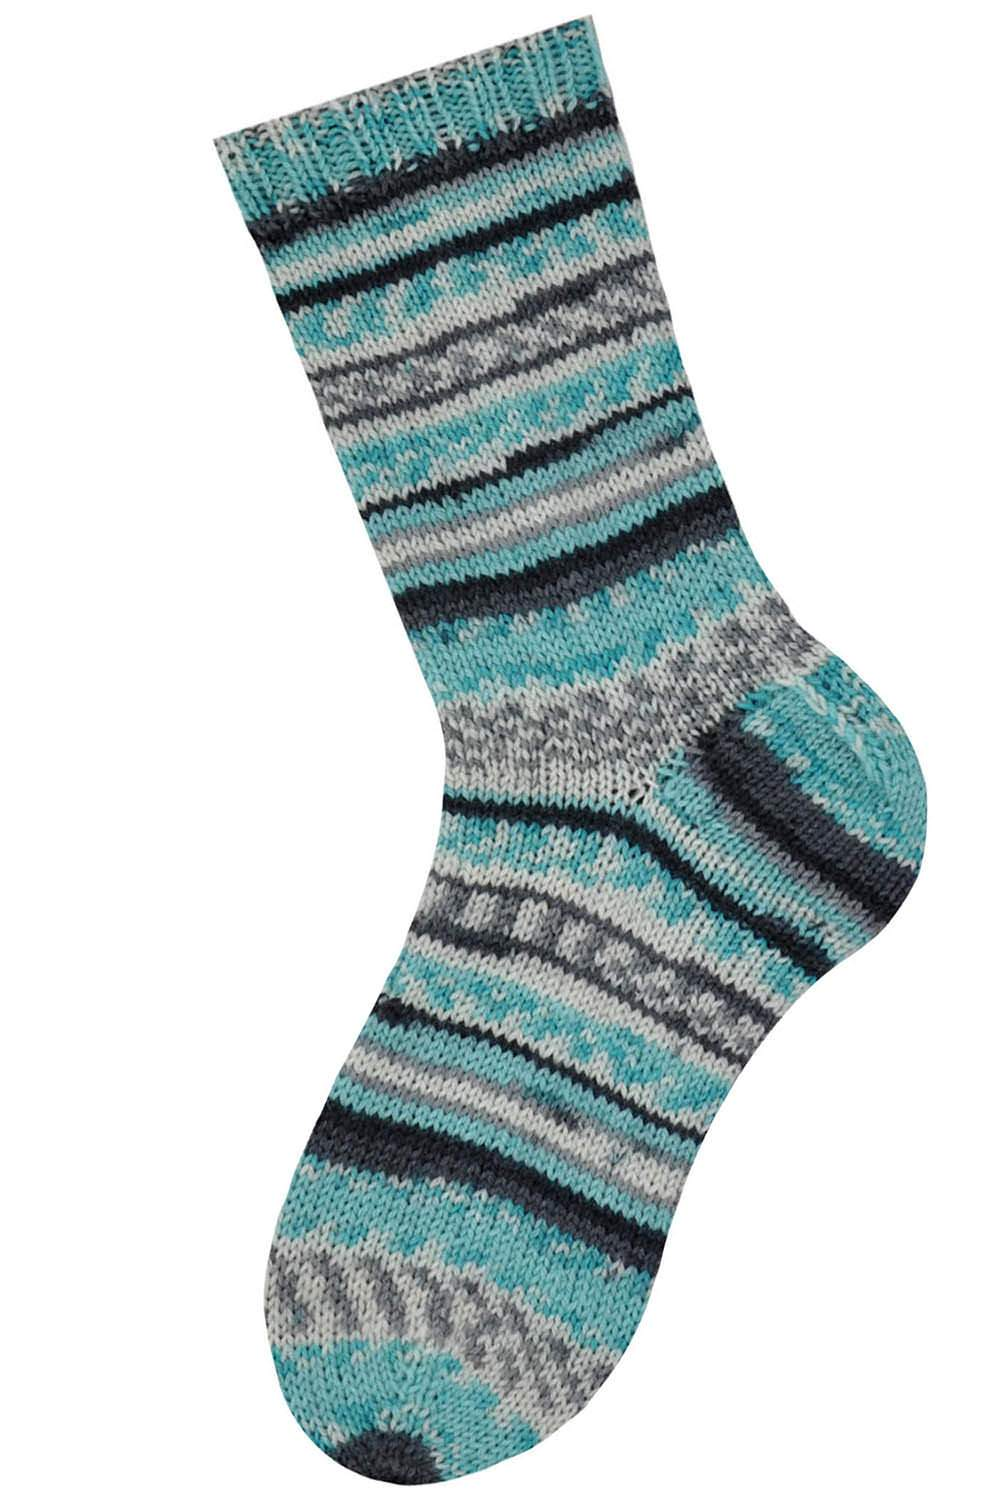 blue and gray striped sock knitted in Wacki Saki yarn